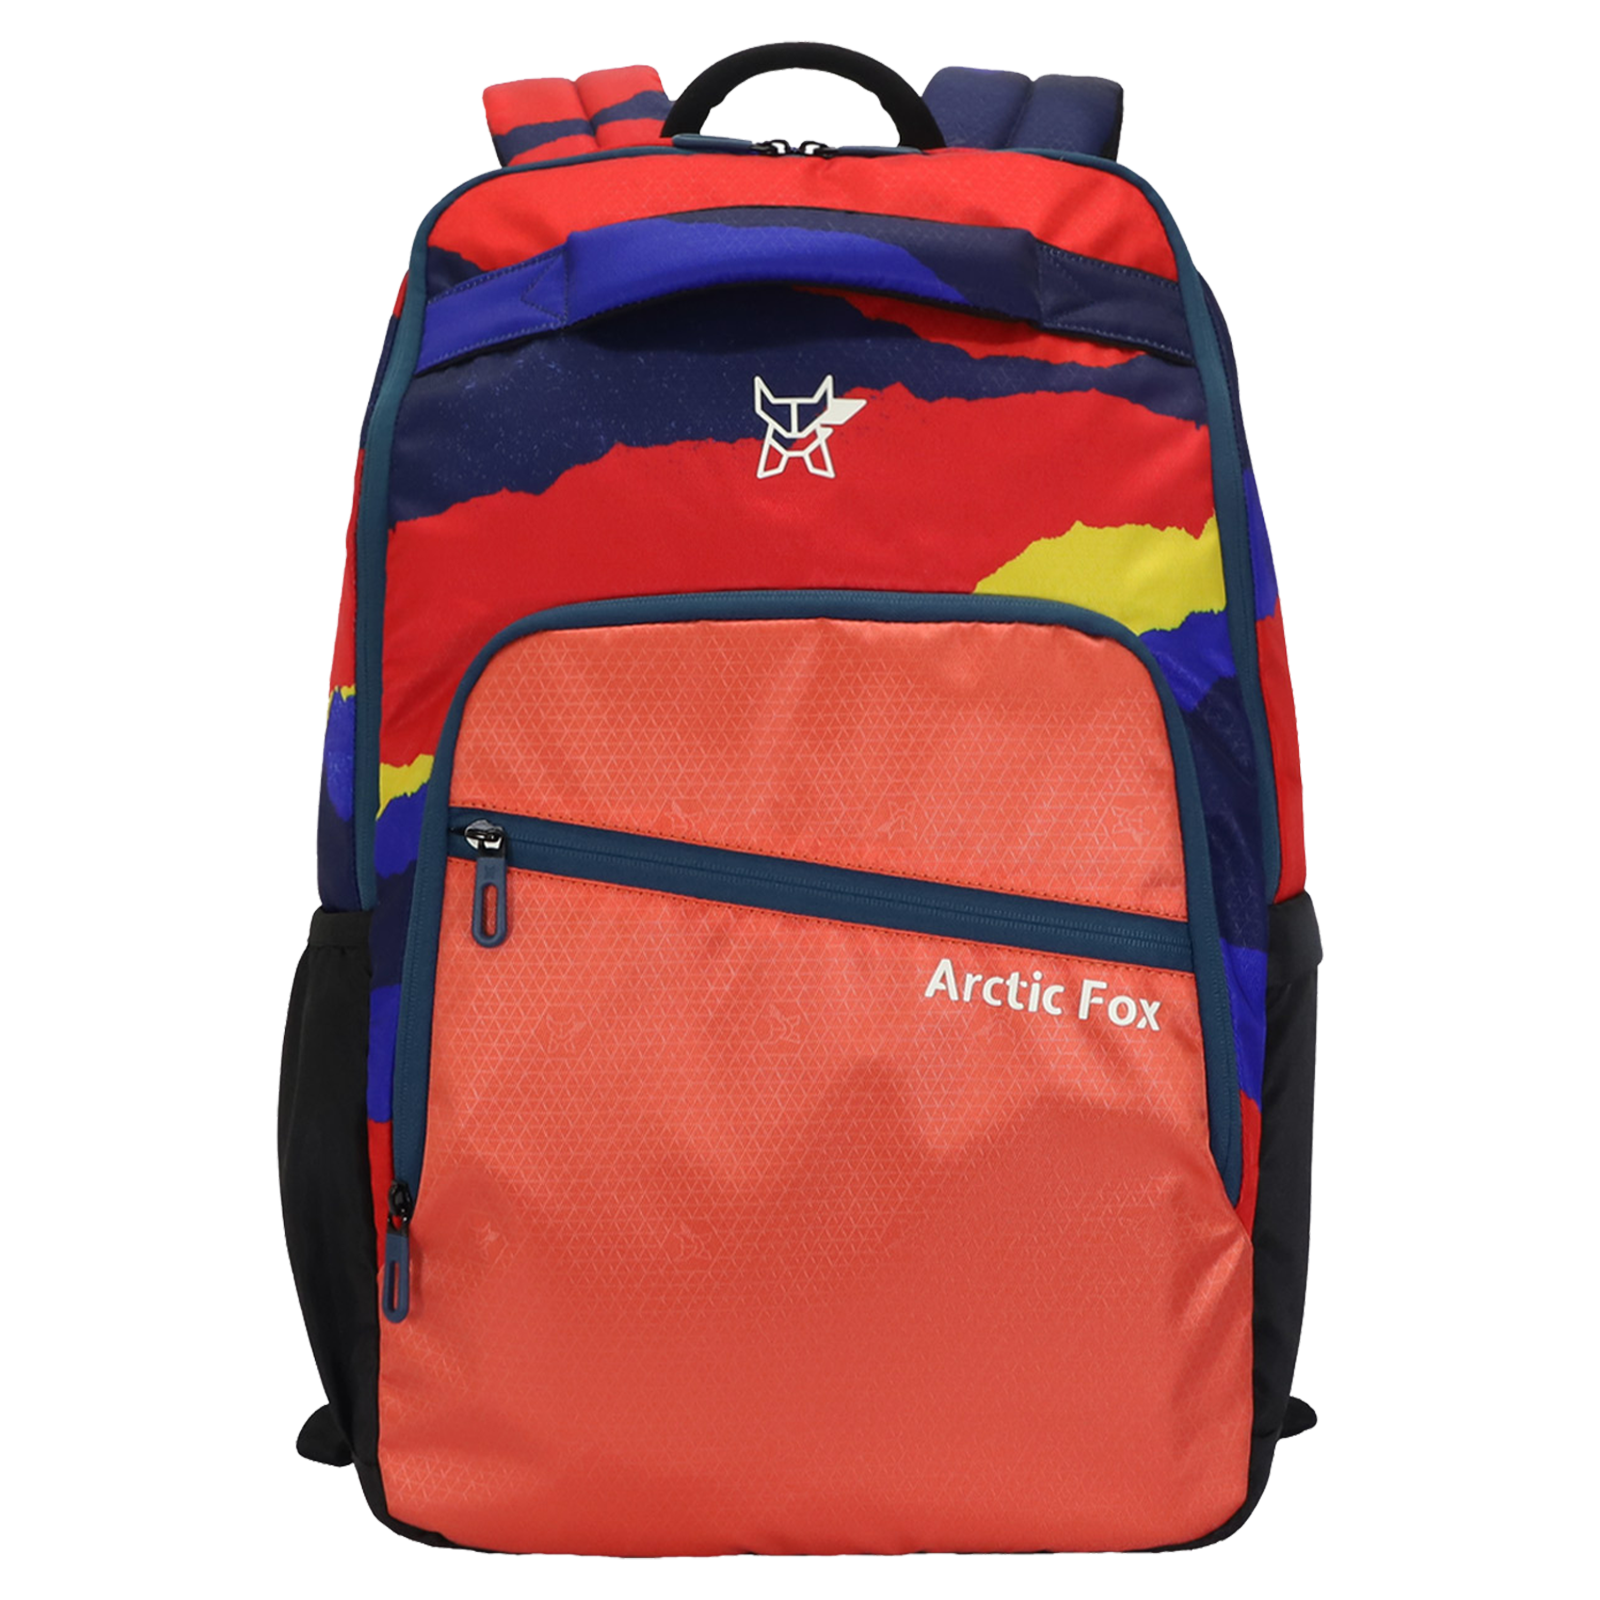 Arctic Fox Color Paper 23.5 Litres PU Coated Polyester Backpack (2 Spacious Compartments, FUNBPKHCRON088024, Hot Coral)_1